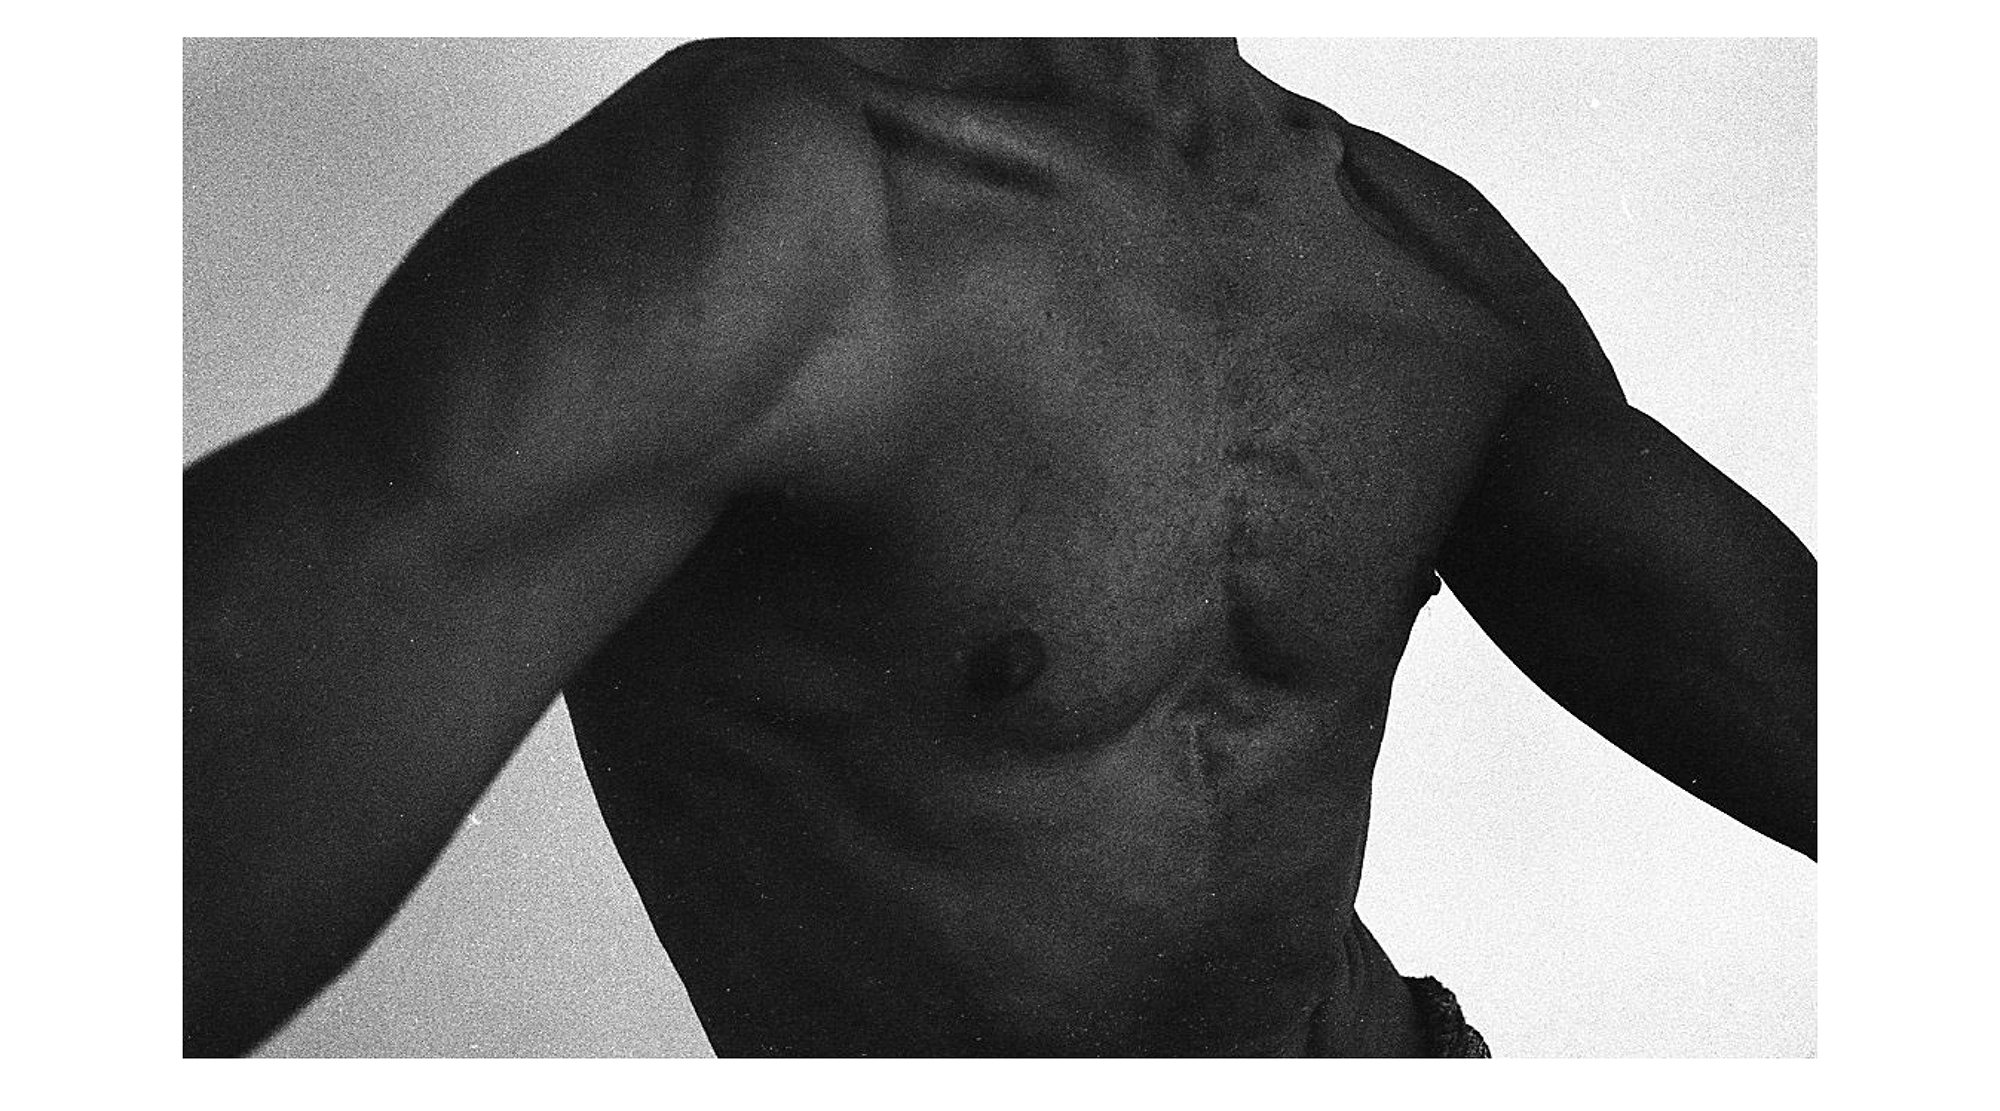 a black-and-white close up of a muscular male torso